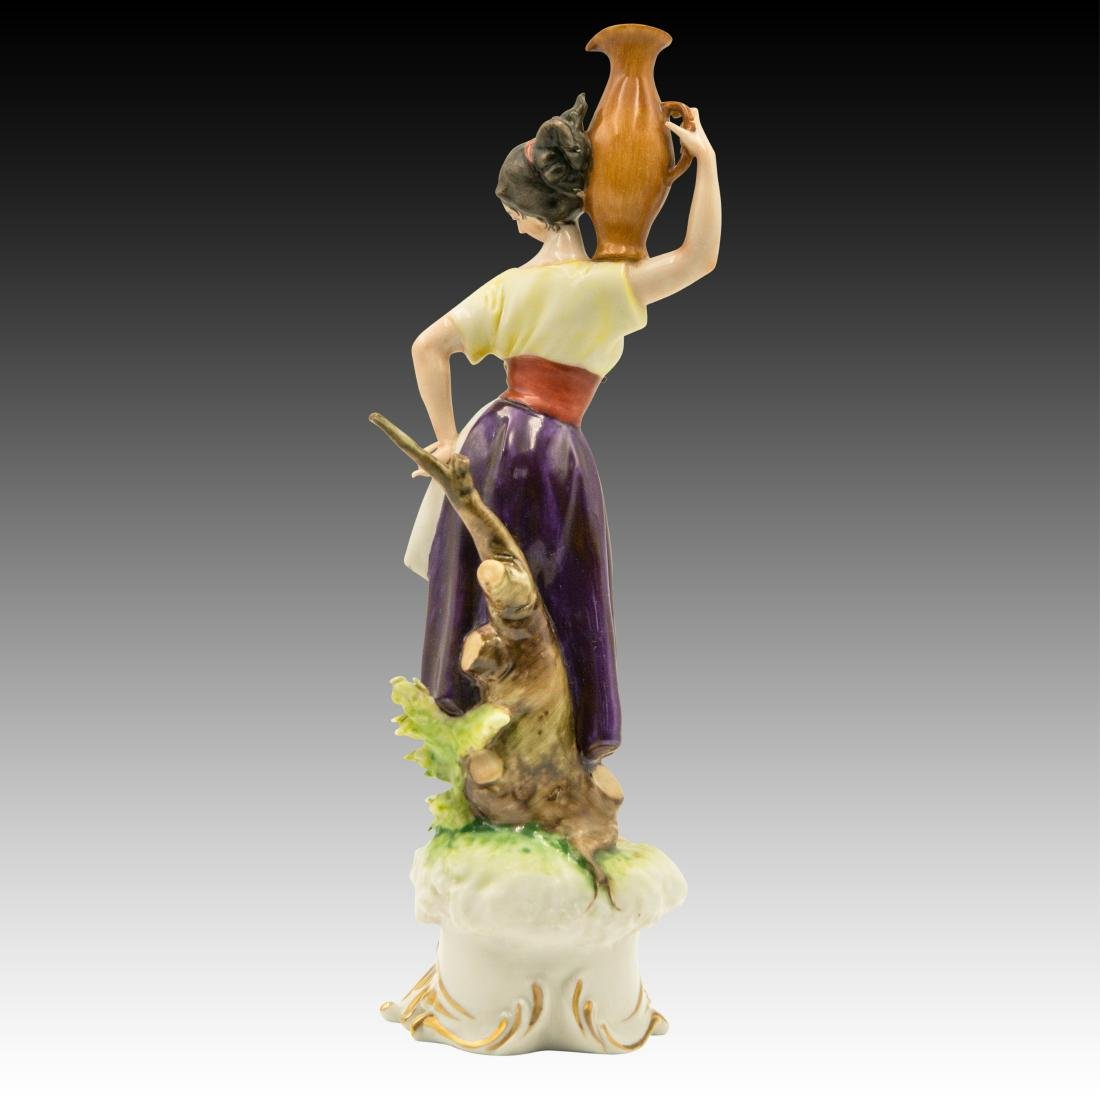 Young Peasant Woman Carrying a Water Jug Figurine - 4